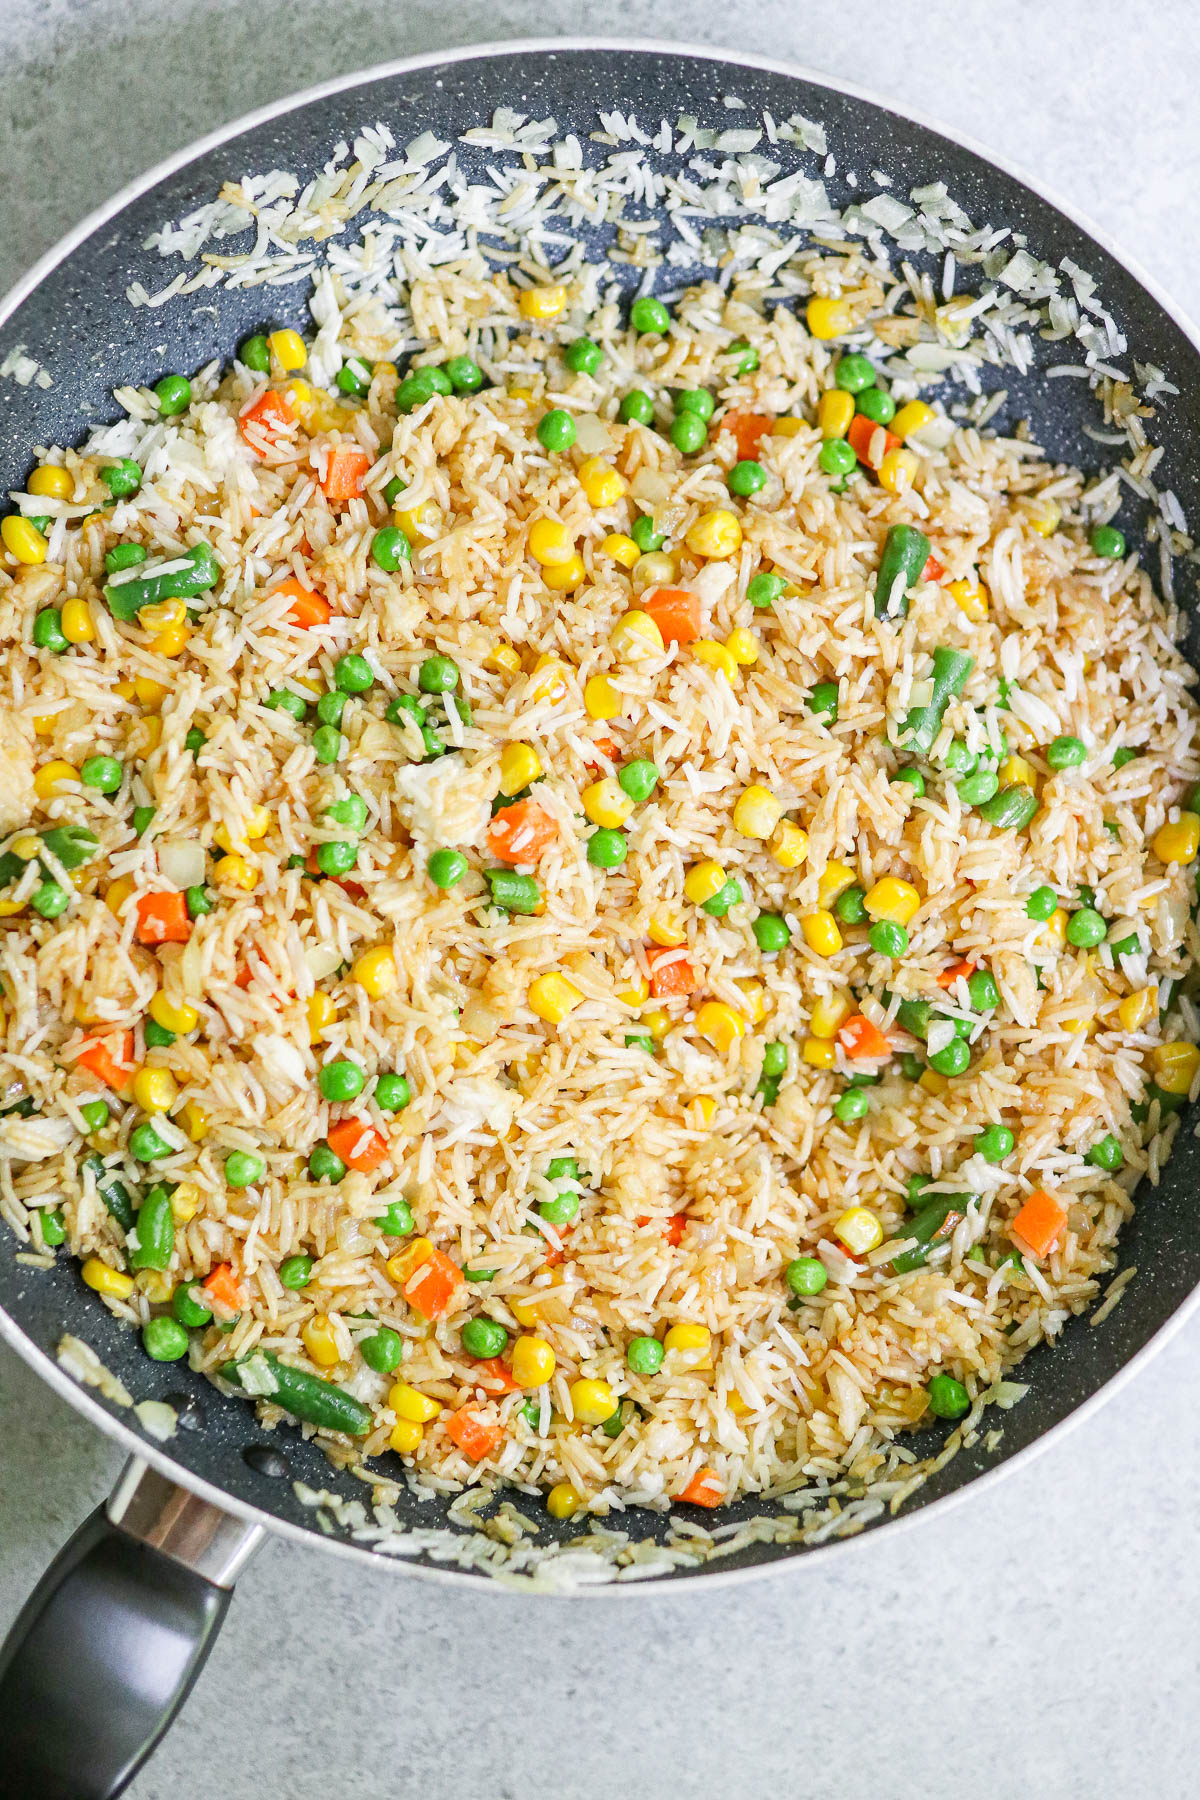 Photo of cooked fried rice